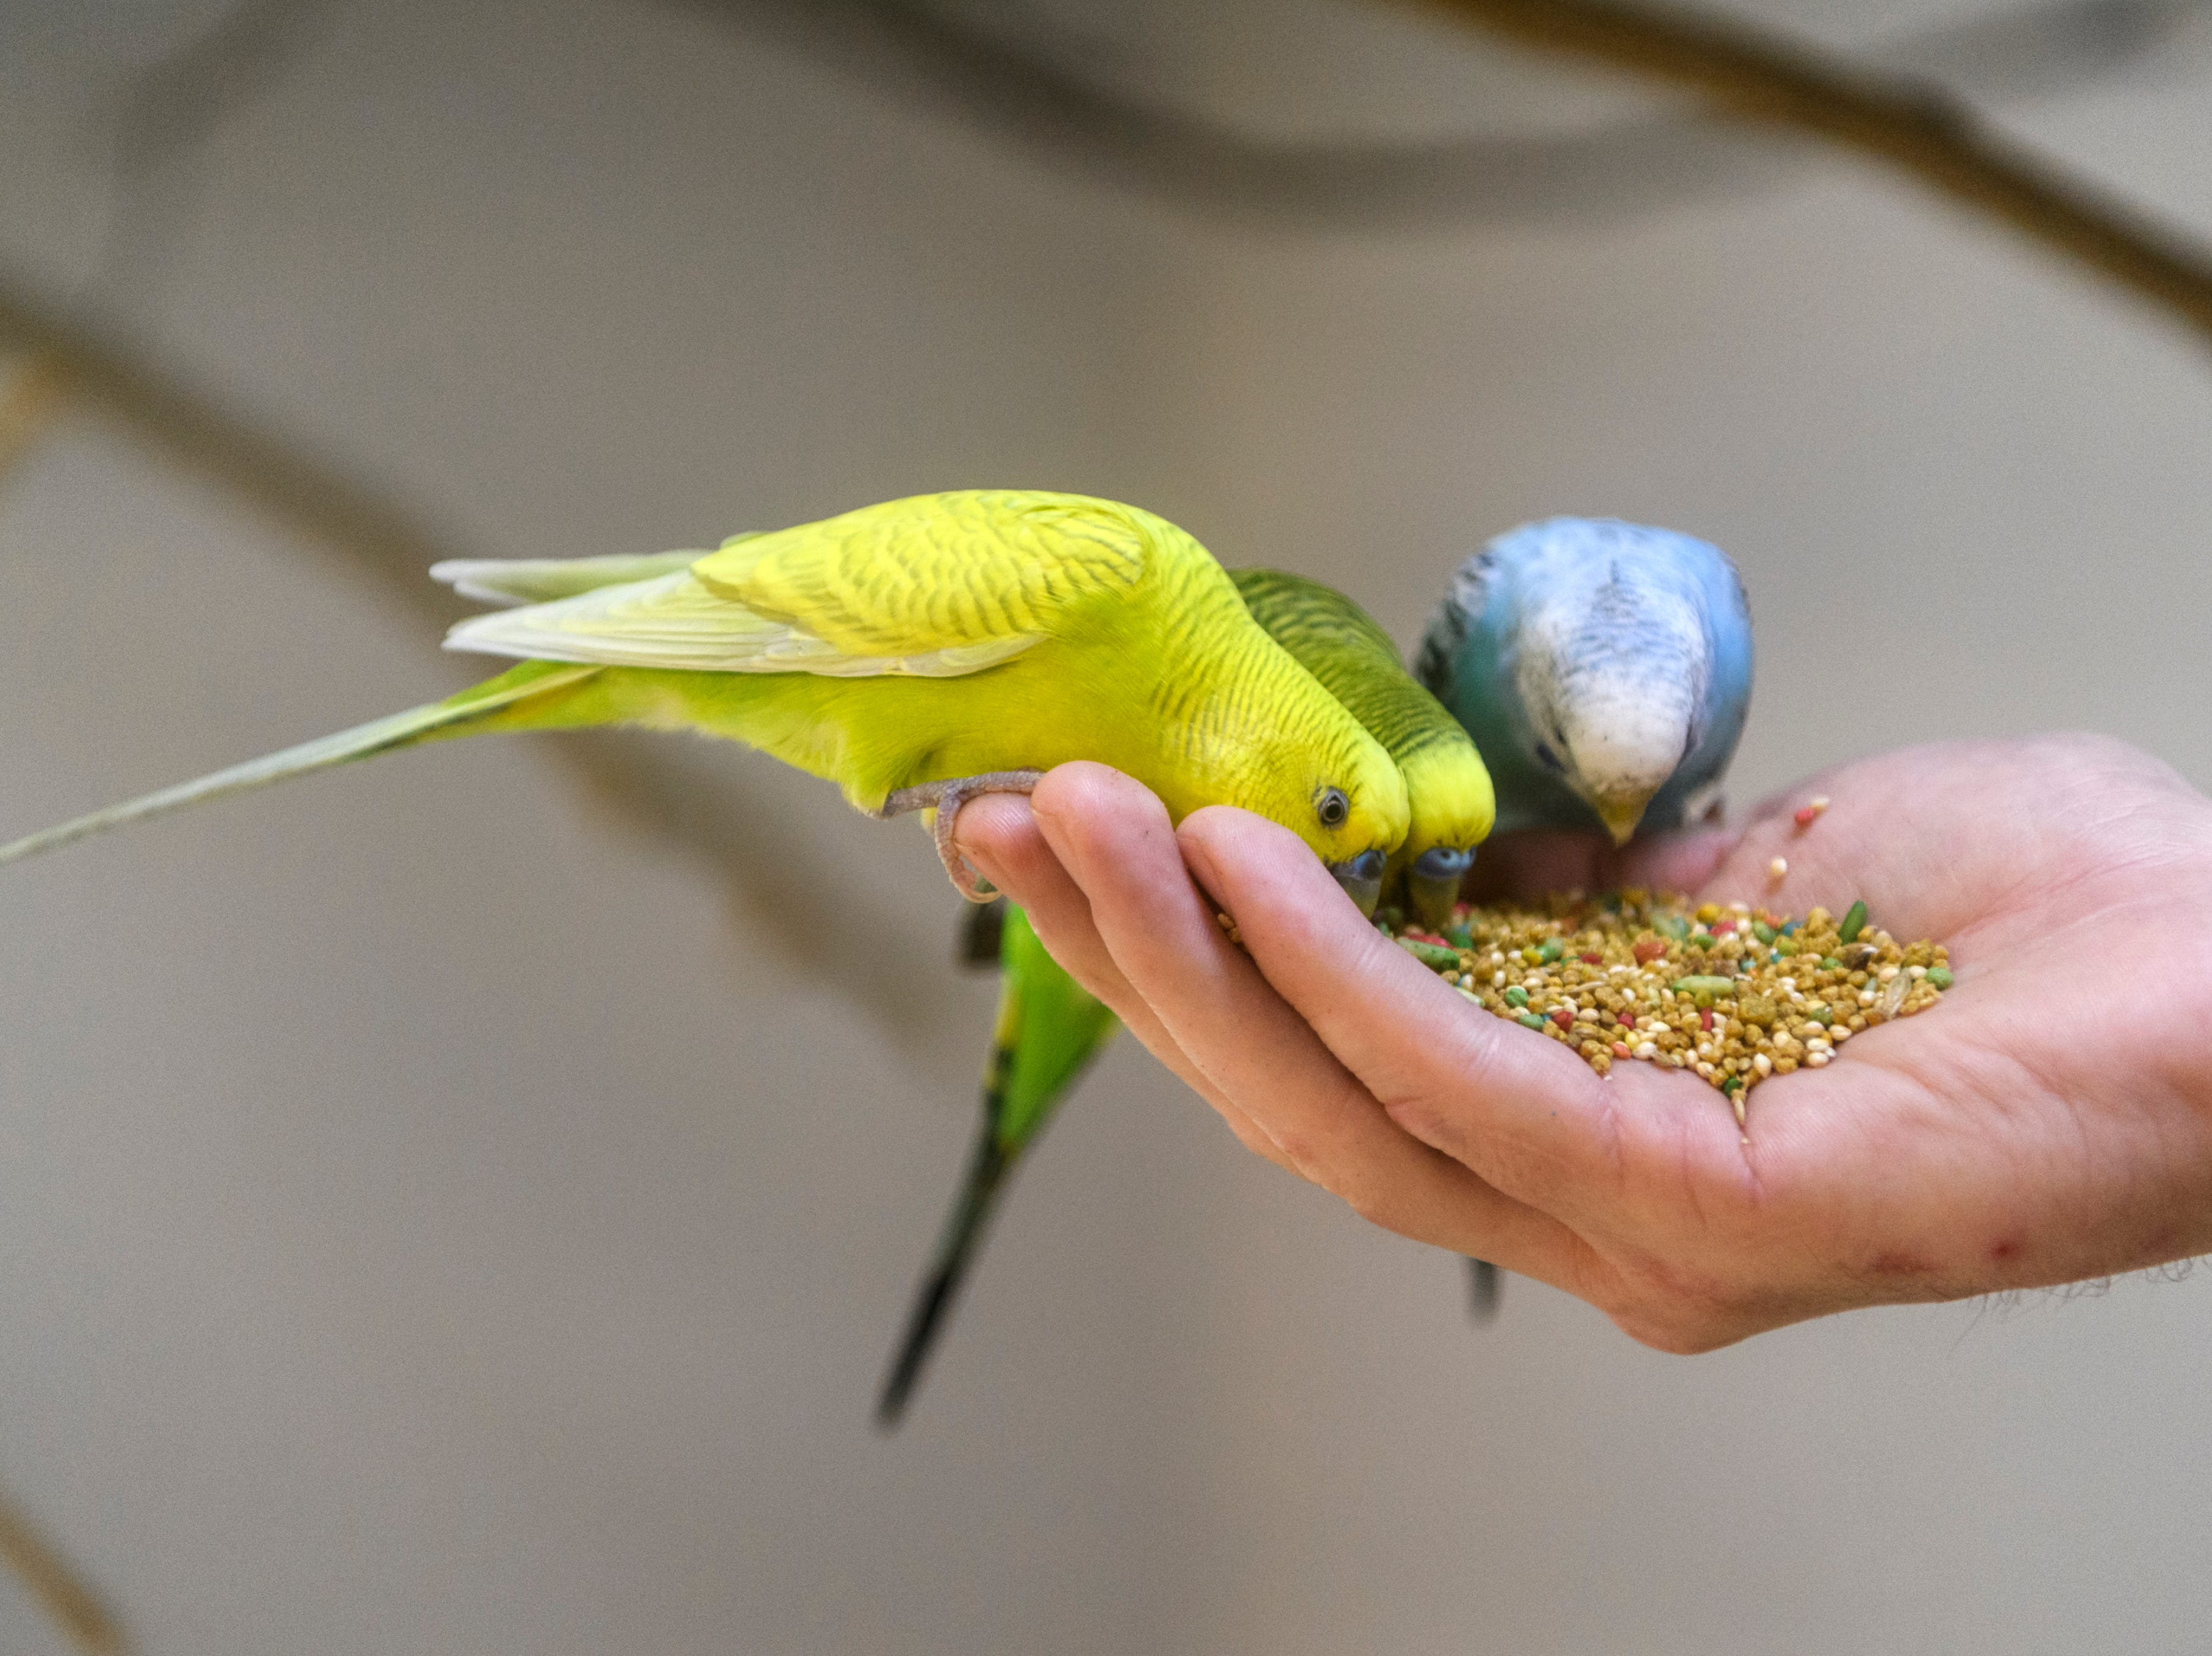 Zookeeper Bryan Plis lets Budgies eat out of his hand at Evansville's Mesker Park Zoo, Thursday morning, May 2, 2019. About 350 budgies are currently being sequestered inside as the zoo prepares a new interactive outdoor atrium exhibit, which will open to the public on May 17.